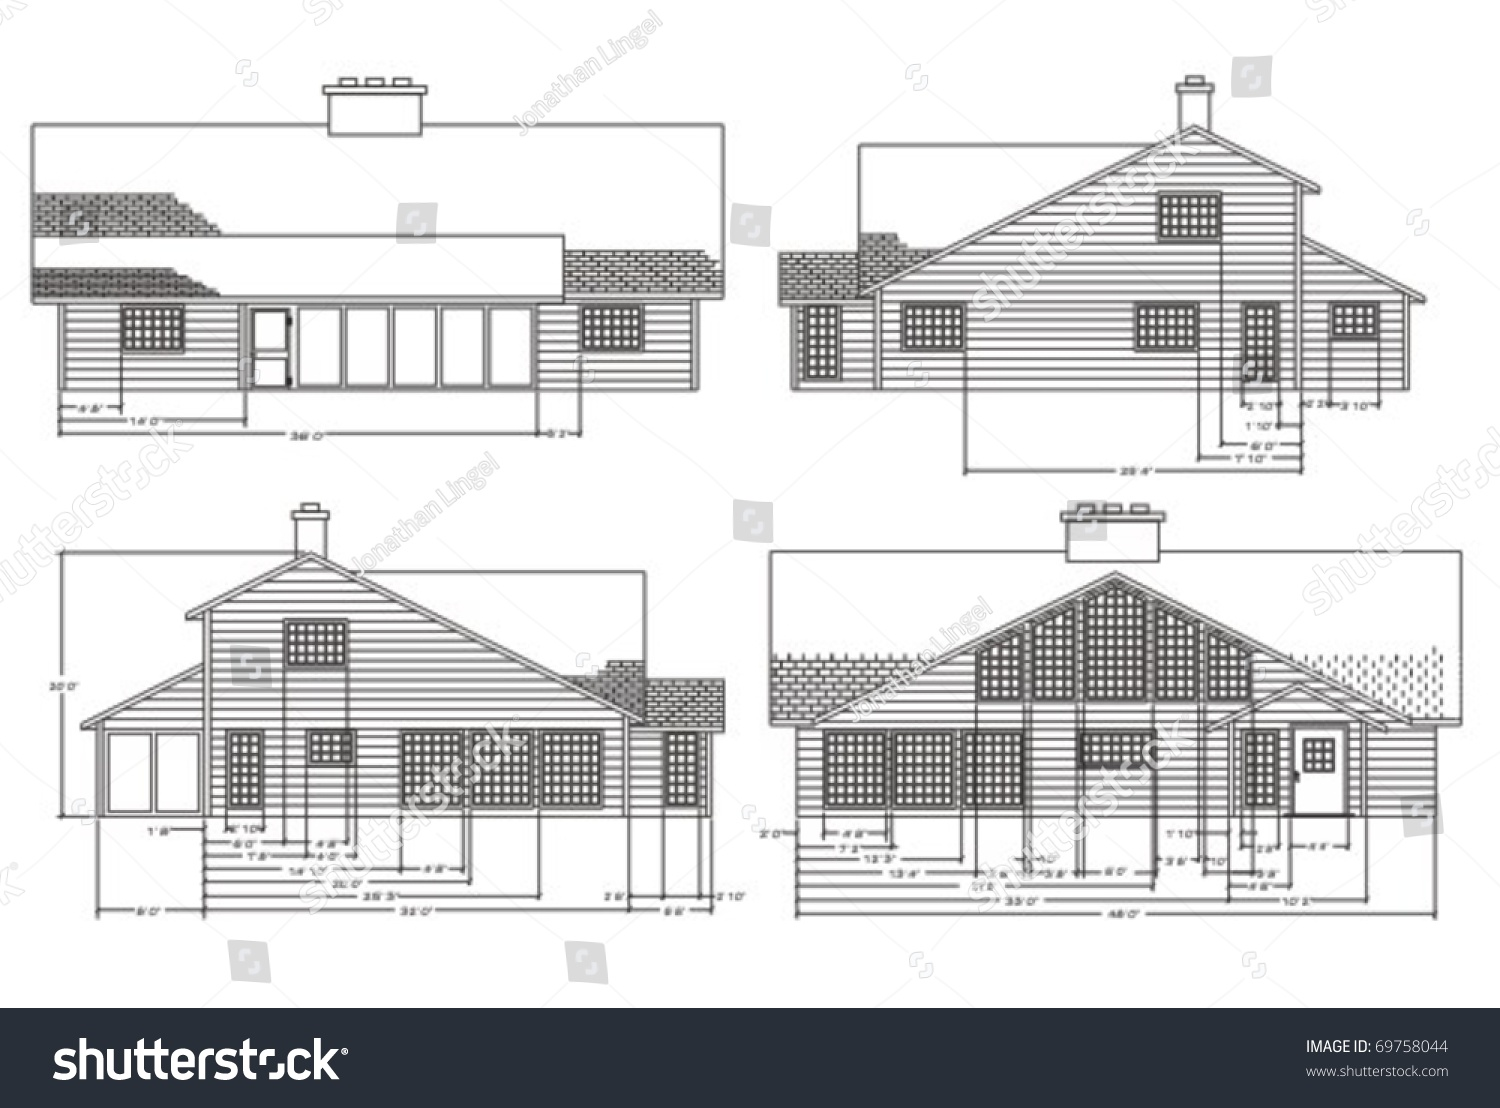 Elevation Plan View : Elevation view home construction plans stock vector